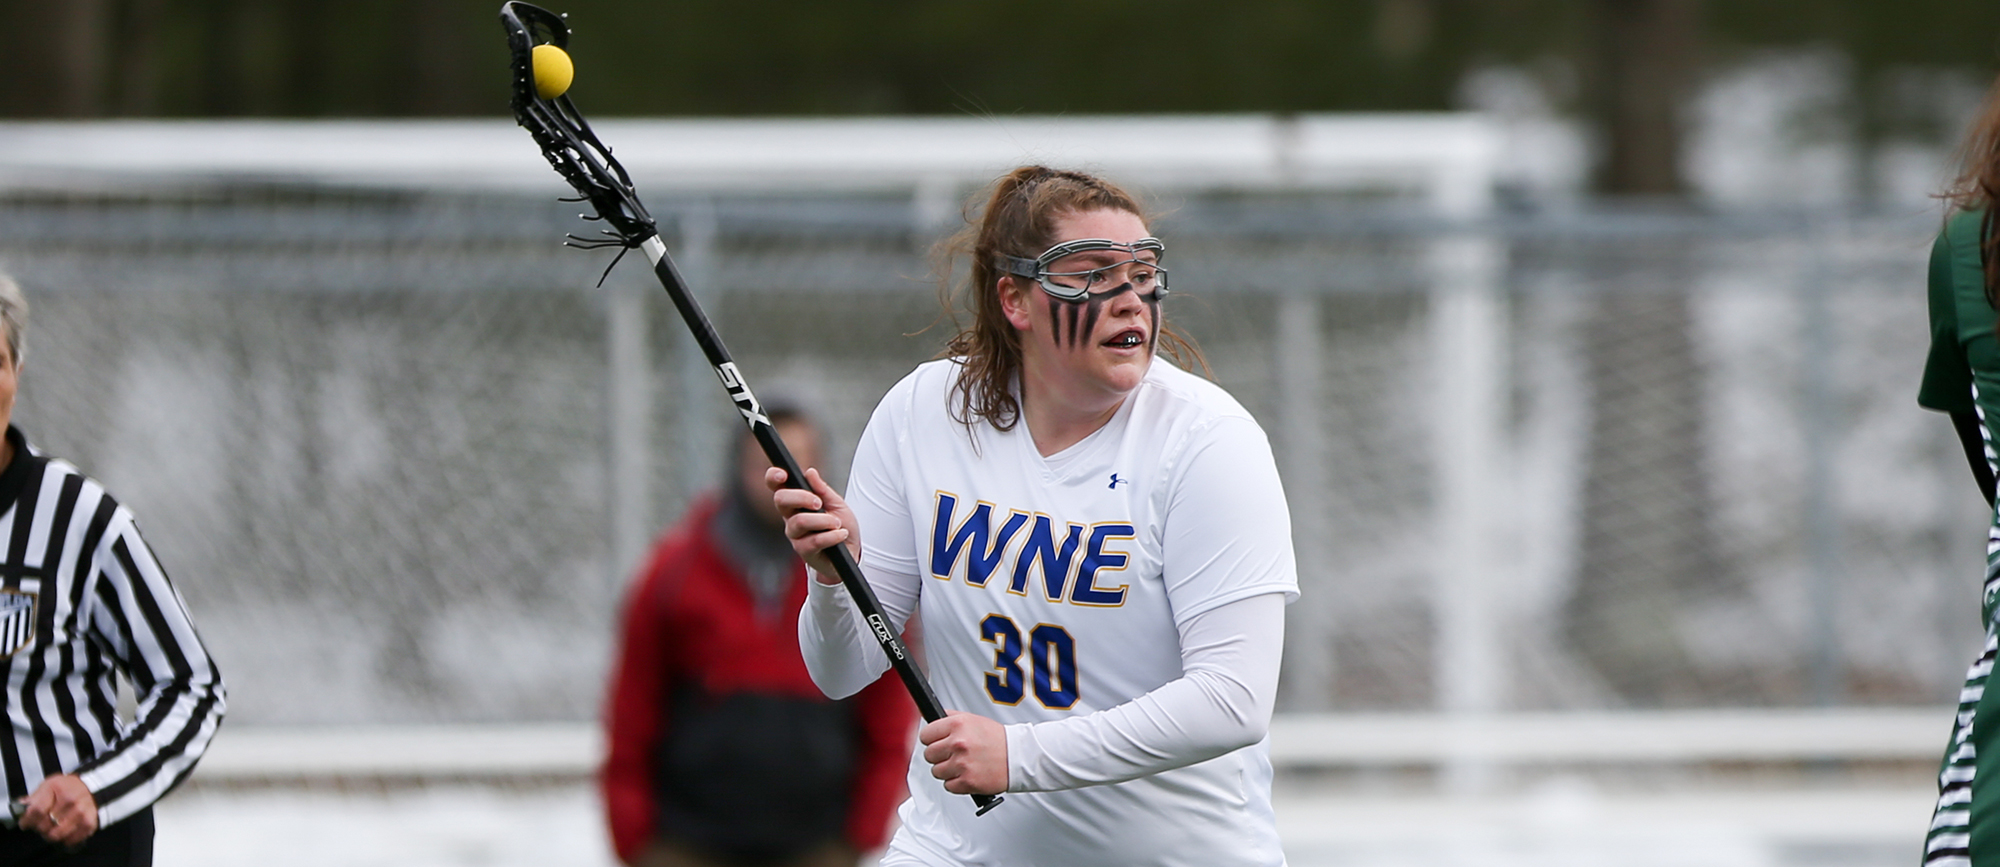 Eileen Ruby scored five goals, including the game-winner with 30 seconds remaining, in Western New England's 15-14 victory over Calvin in Florida on Friday. (Photo by Chris Marion)